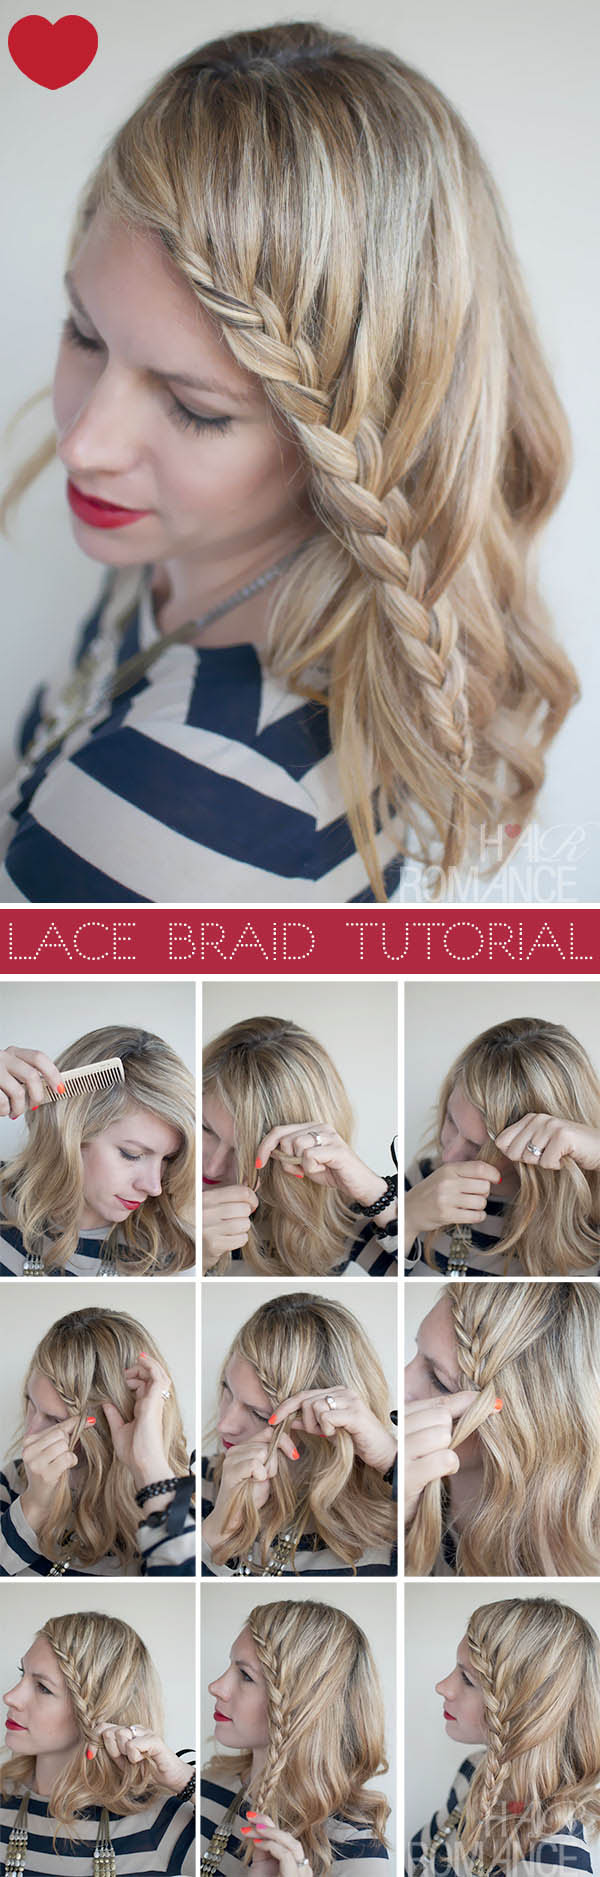 20 Most Beautiful Braided Hairstyle Tutorials For 2014 Pretty Designs